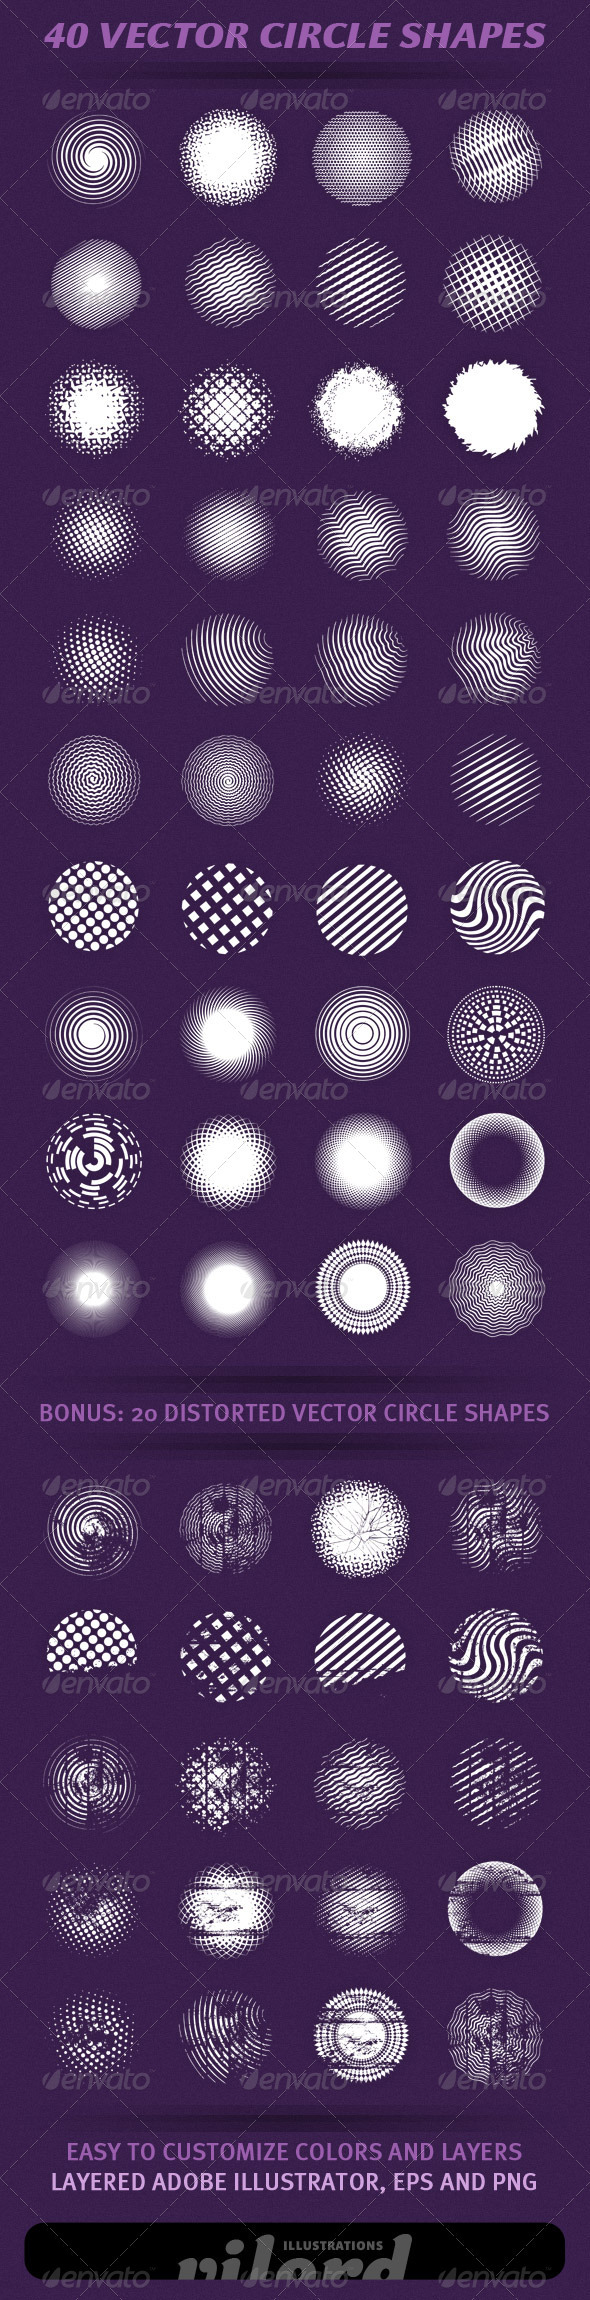 40 Vector Circle Shapes